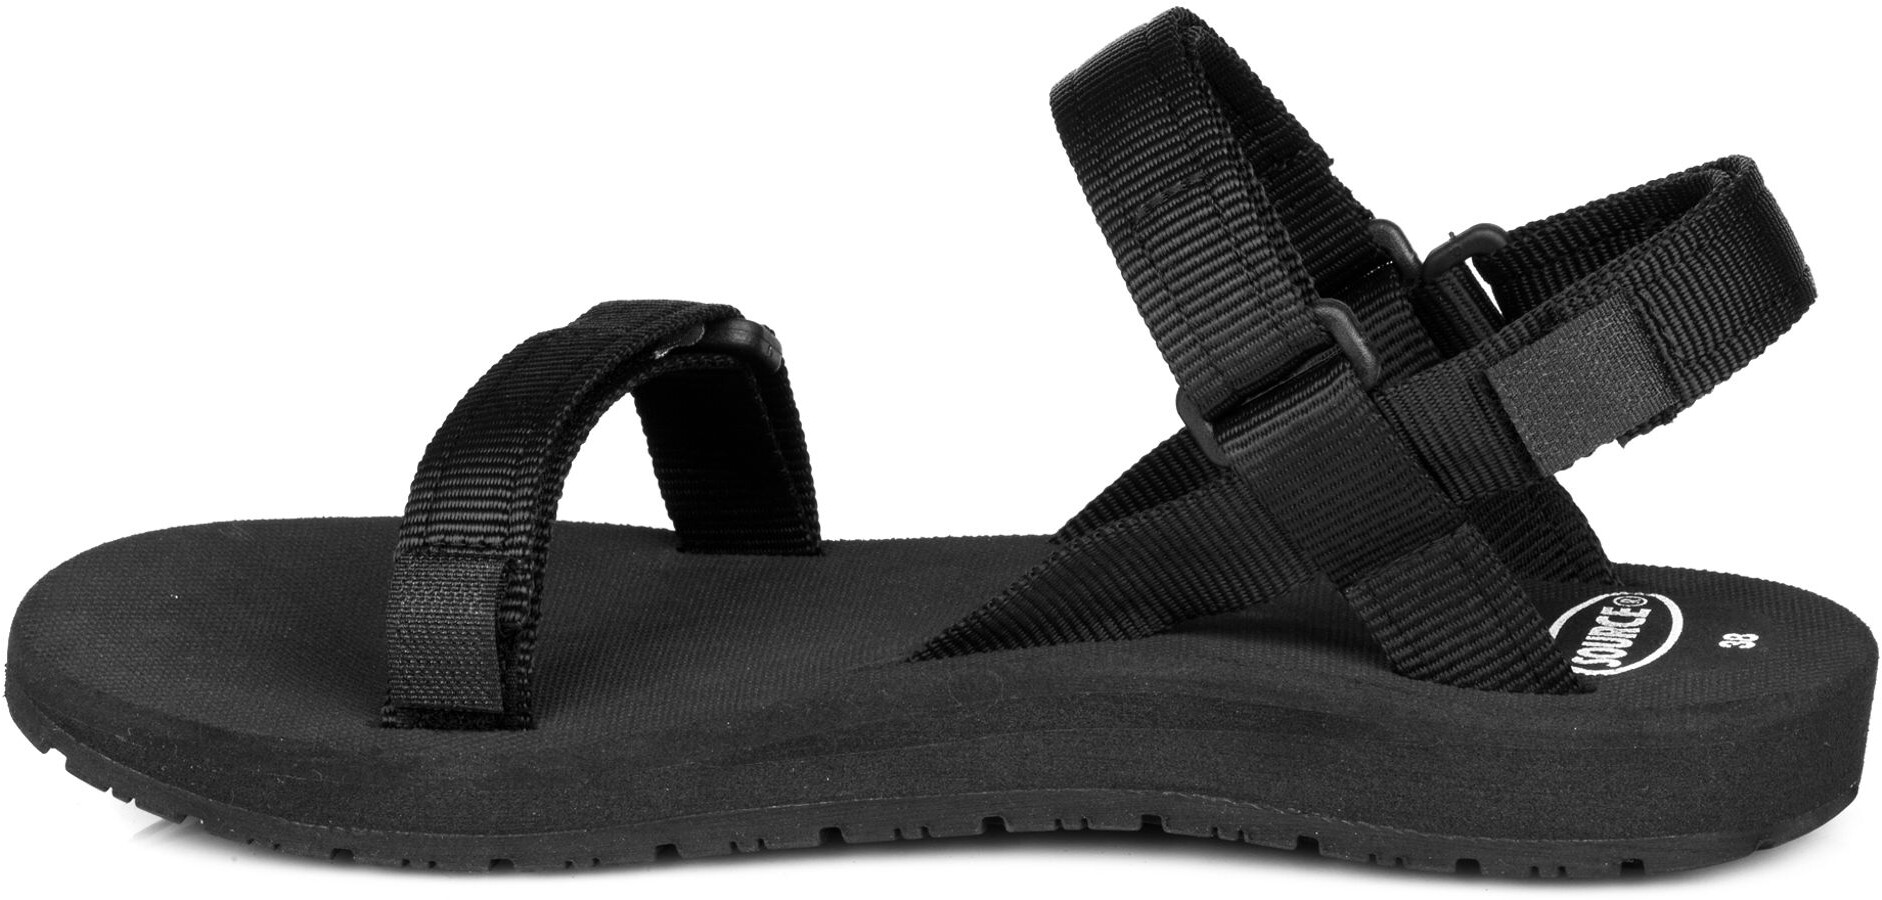 980732262657 SOURCE Classic Sandals Women black at Addnature.co.uk